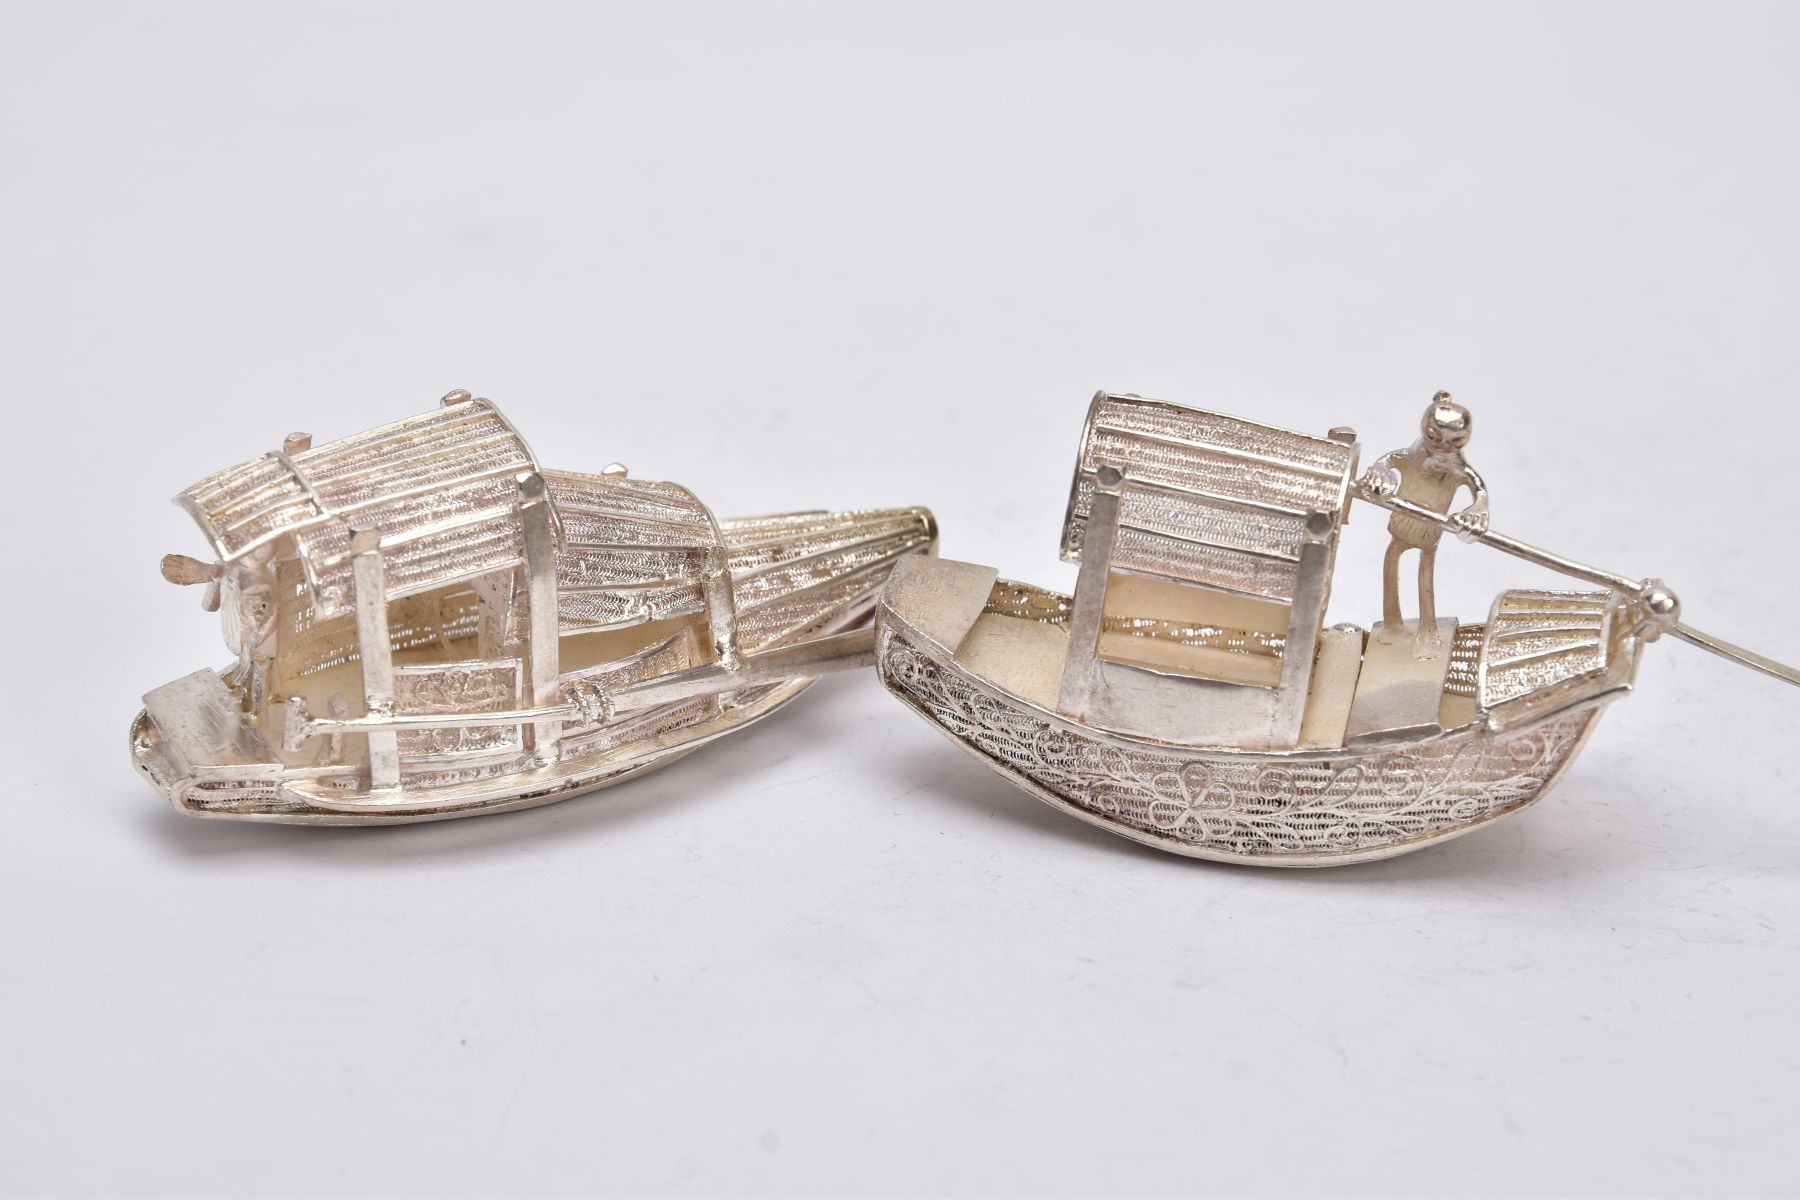 TWO MODERN ORIENTAL, WHITE METAL FILIGREE BOAT ORNAMENTS, one with a standing figure with paddle, - Image 2 of 8